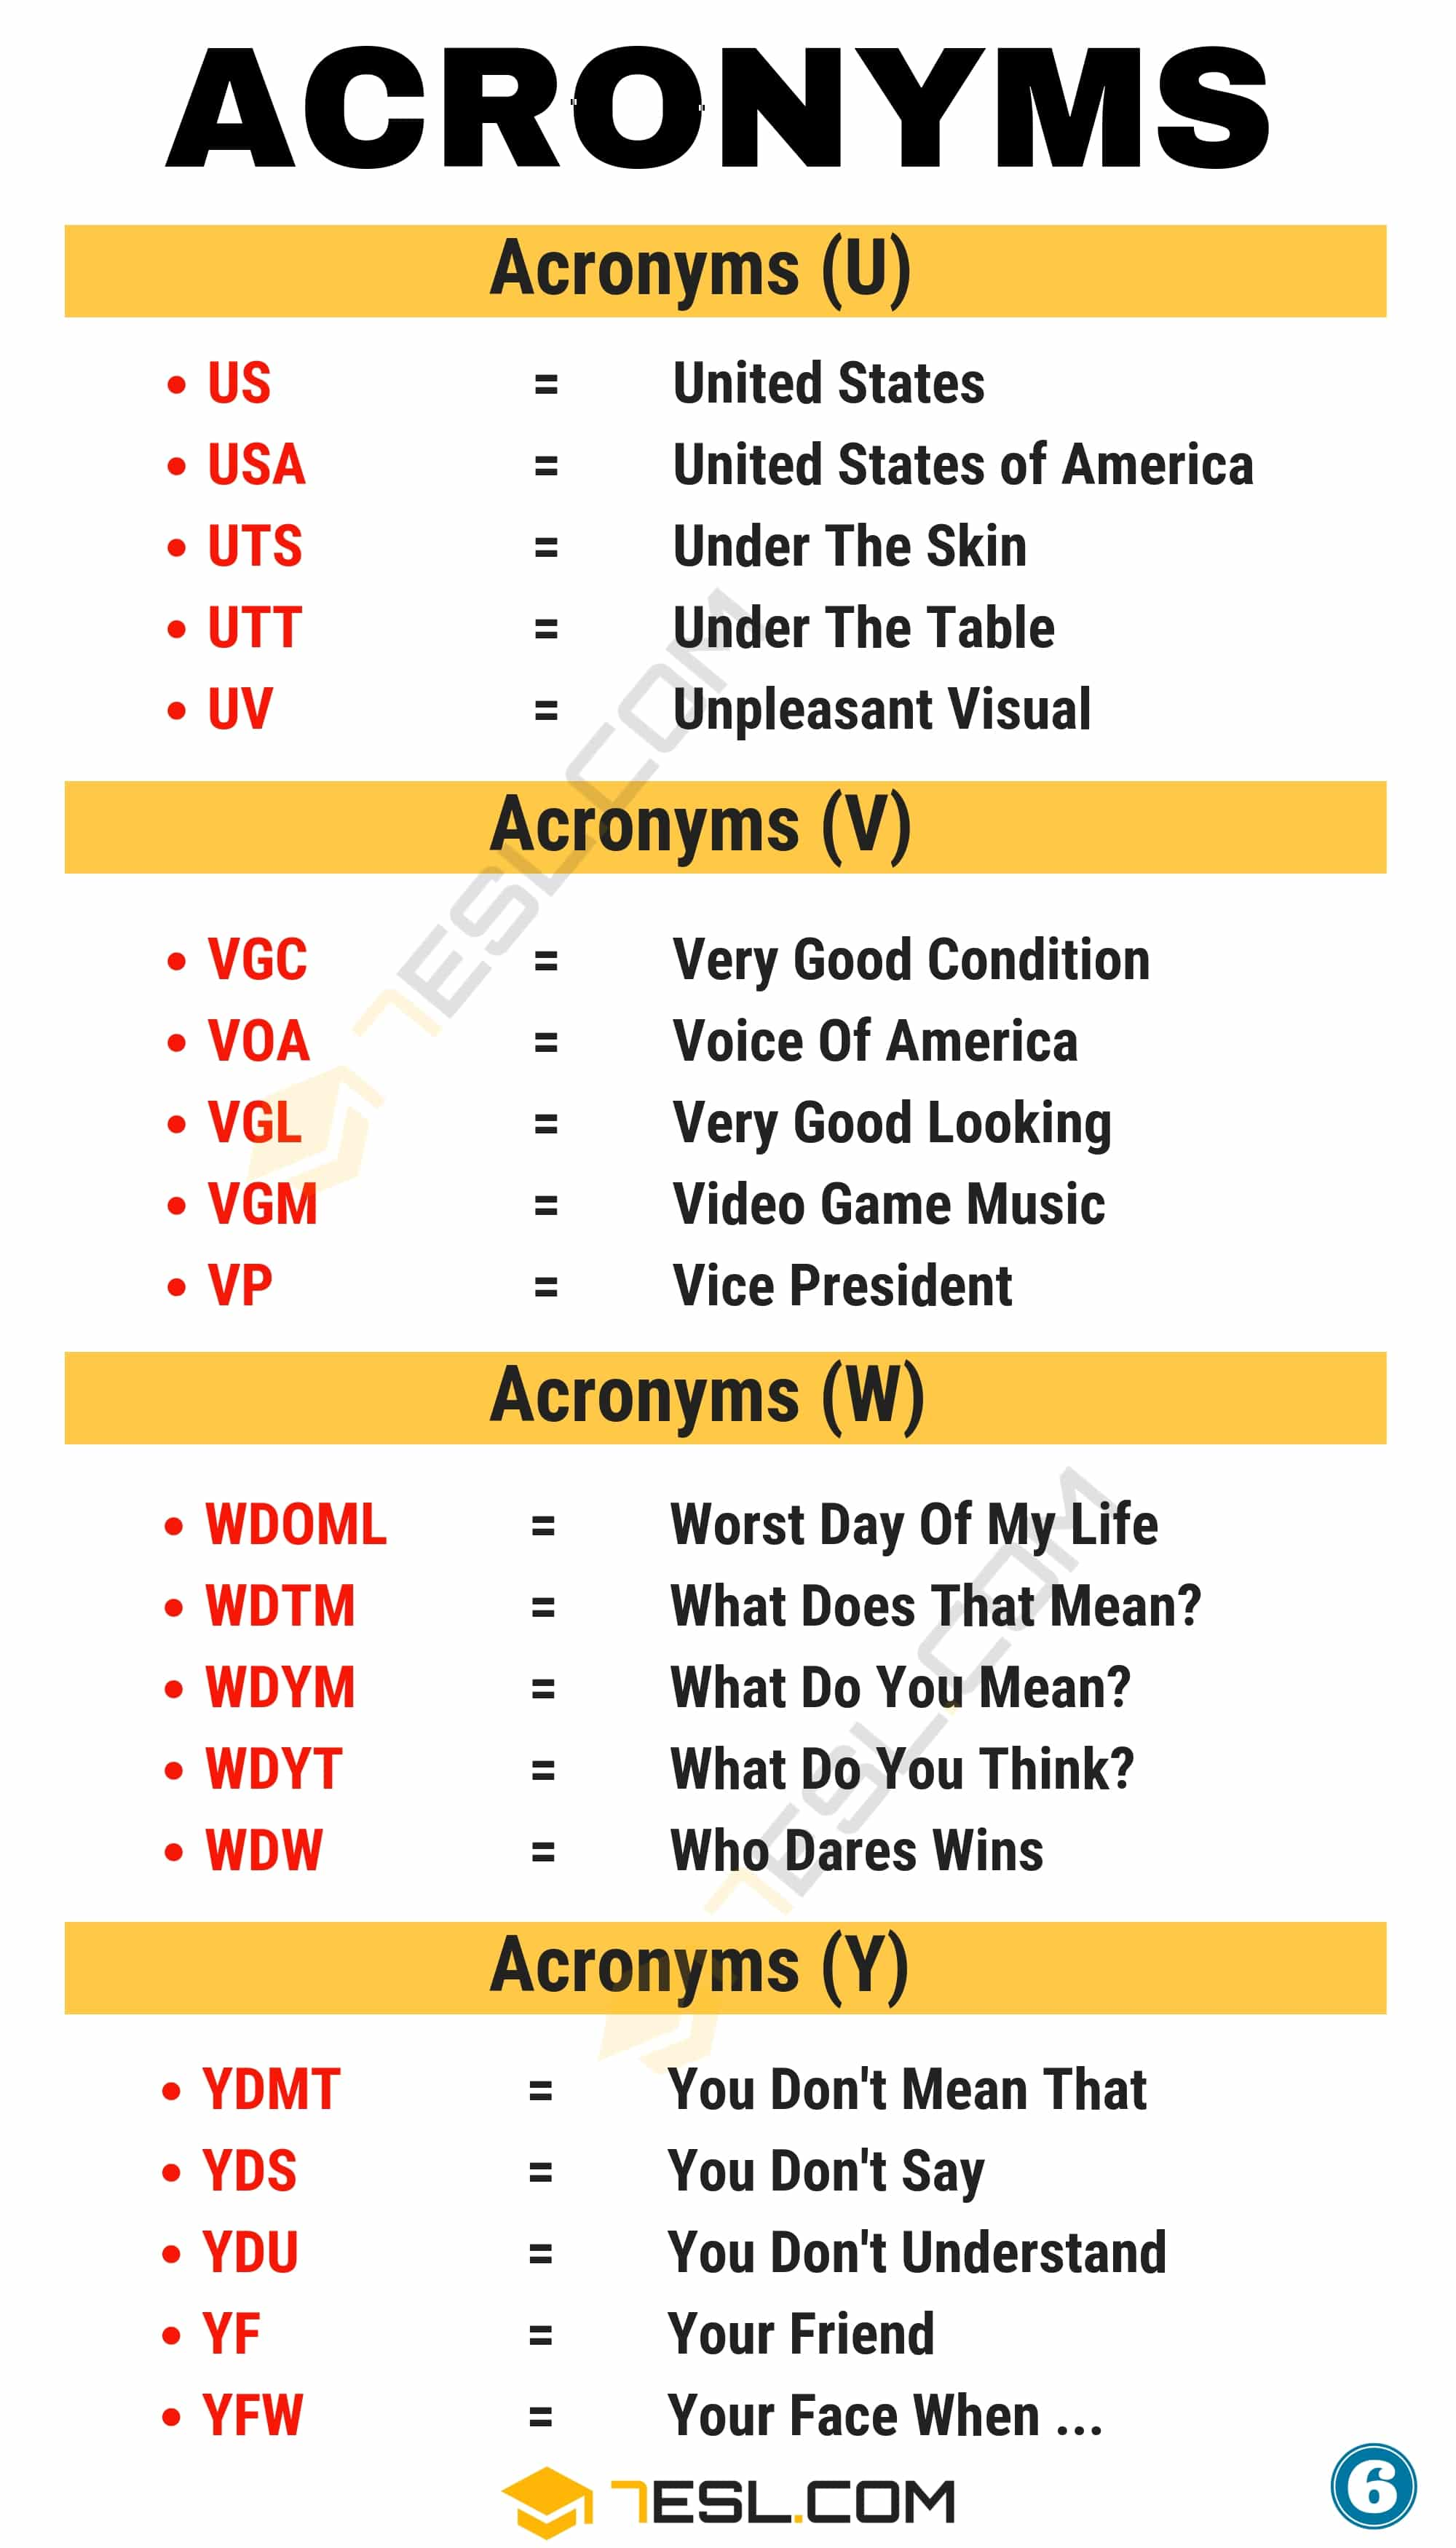 Acronym Definition & Big List of 3000+ Acronyms from A-Z - 7